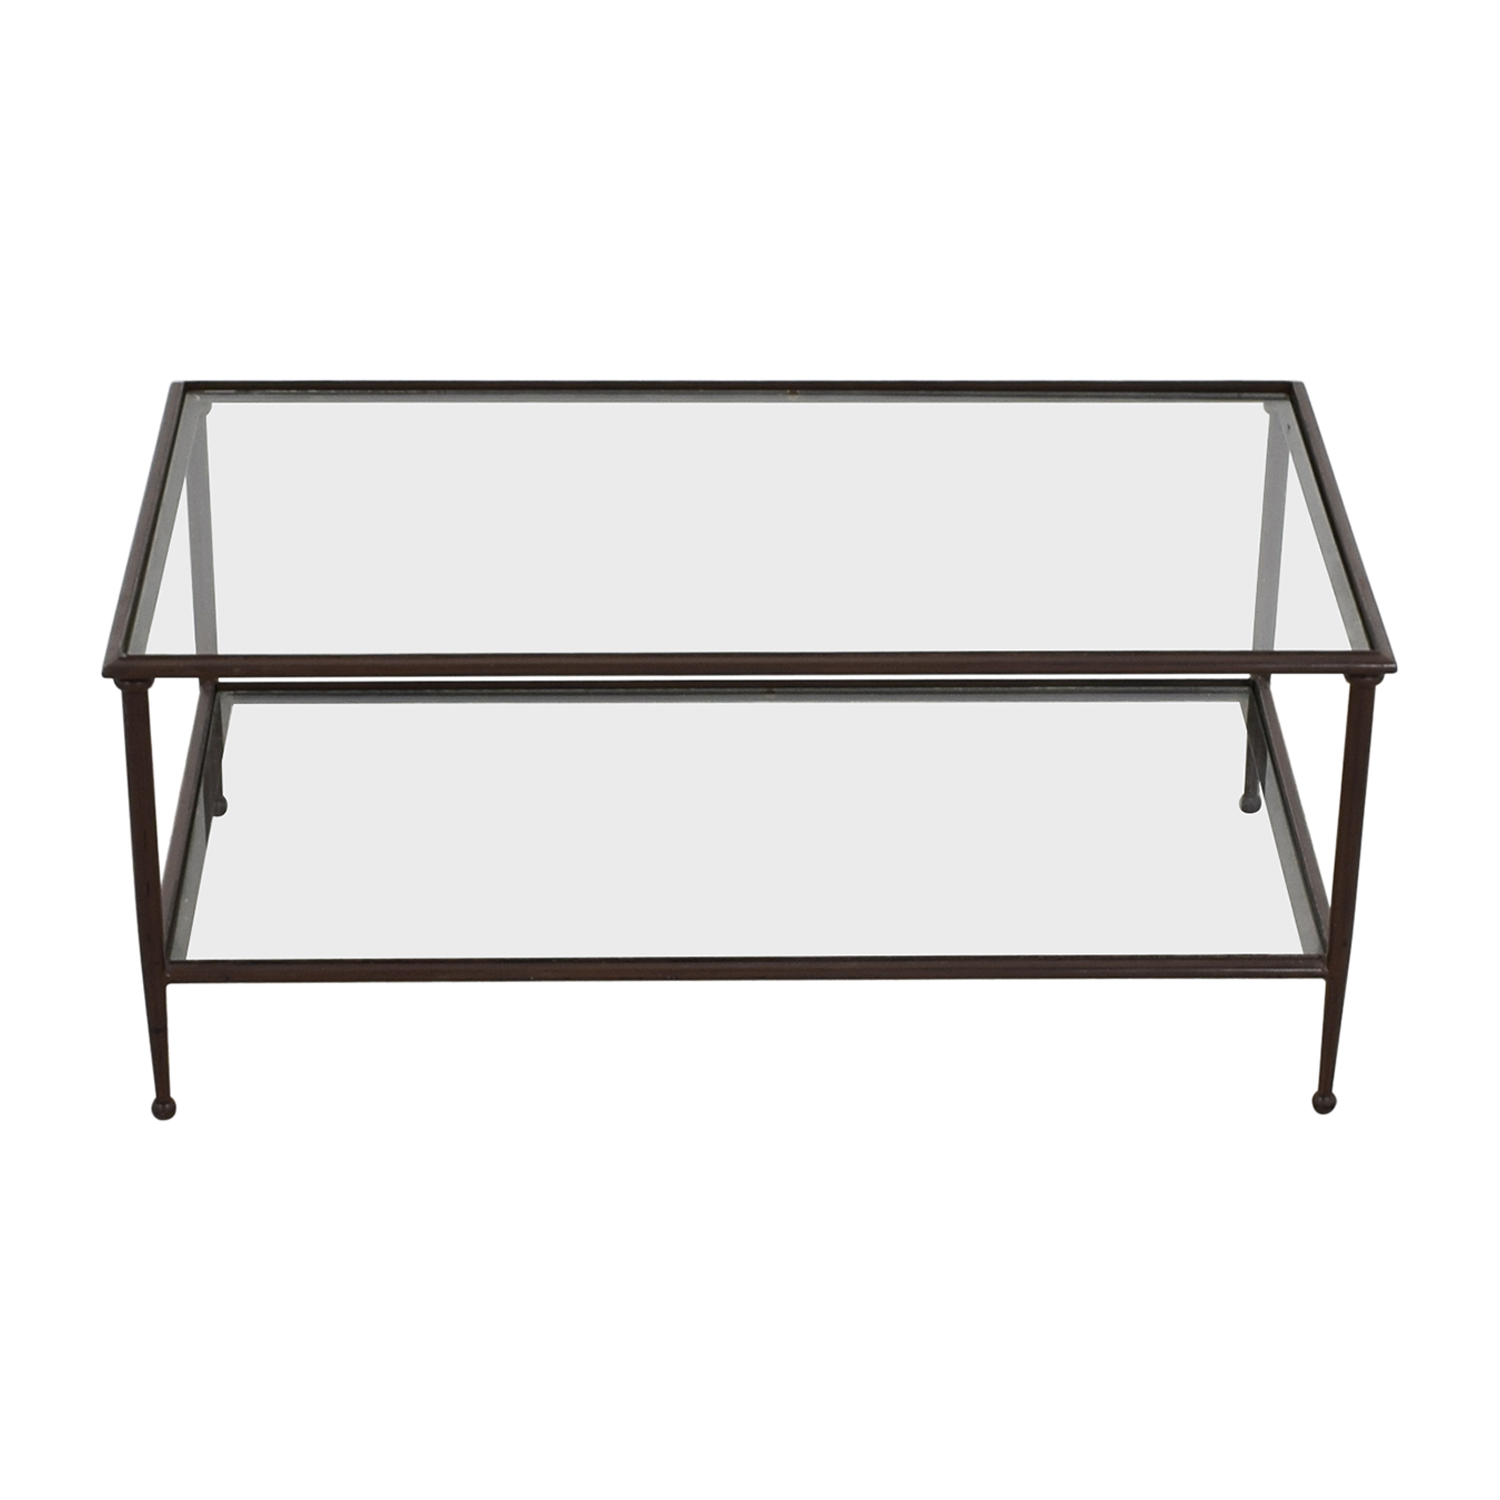 Superbe ... Coffee Table Coupon; Crate U0026 Barrel Crate U0026 Barrel Glass U0026 Metal ...